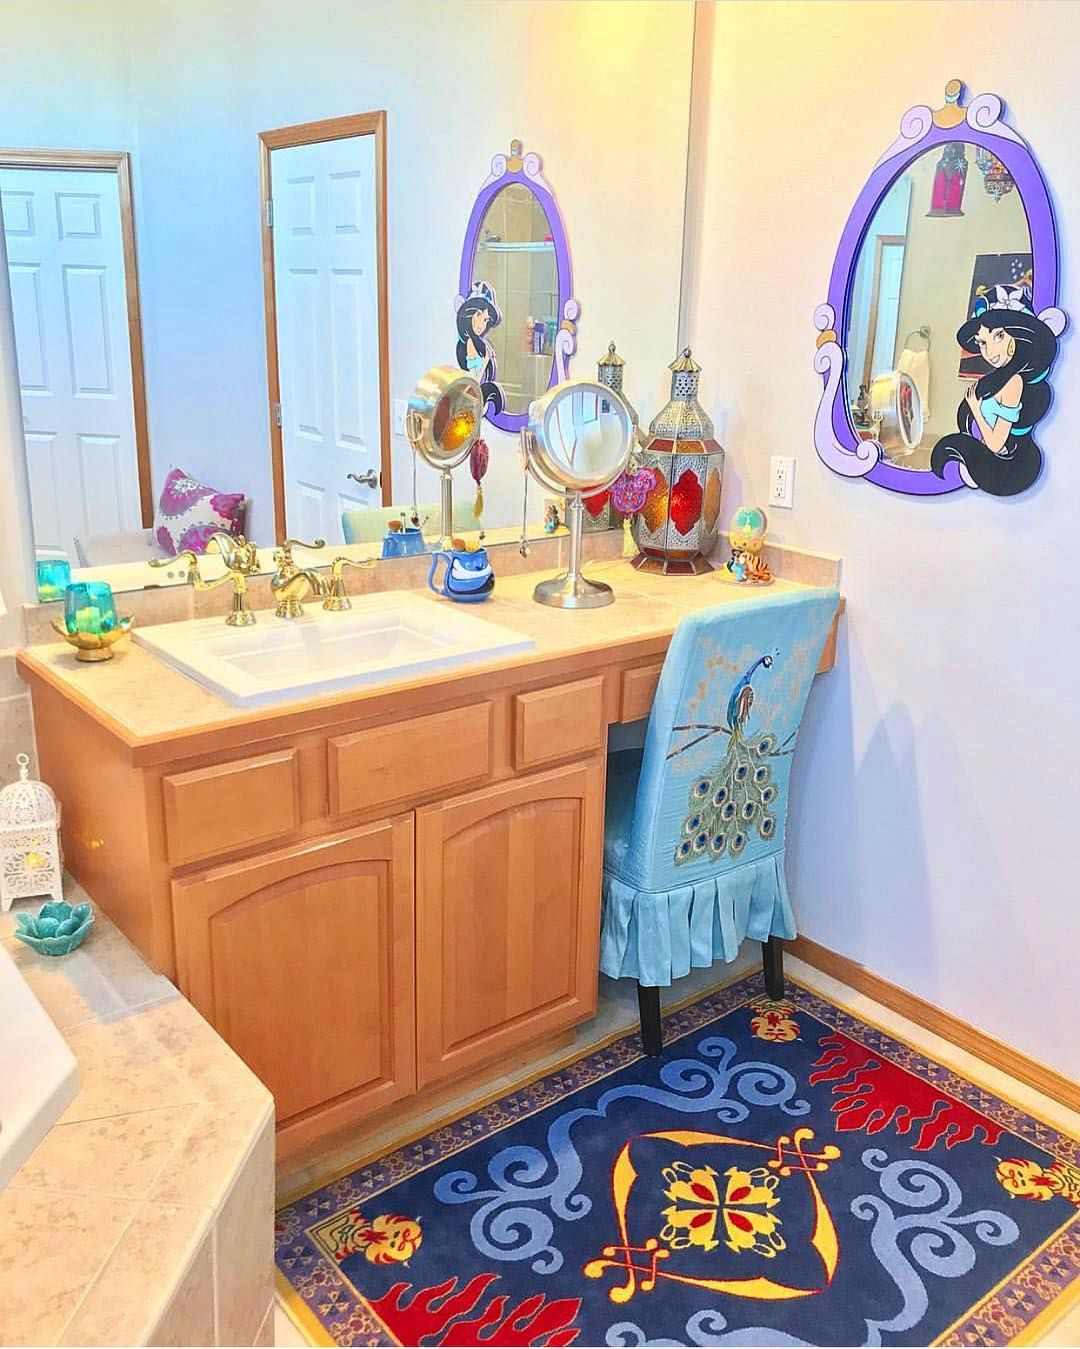 Disney At Home On Instagram Our Friend Kelseymichelle85 Has Such A Magical Aladdin Themed Bathroom We Love Al Disney Bathroom Bathroom Kids Bathroom Themes